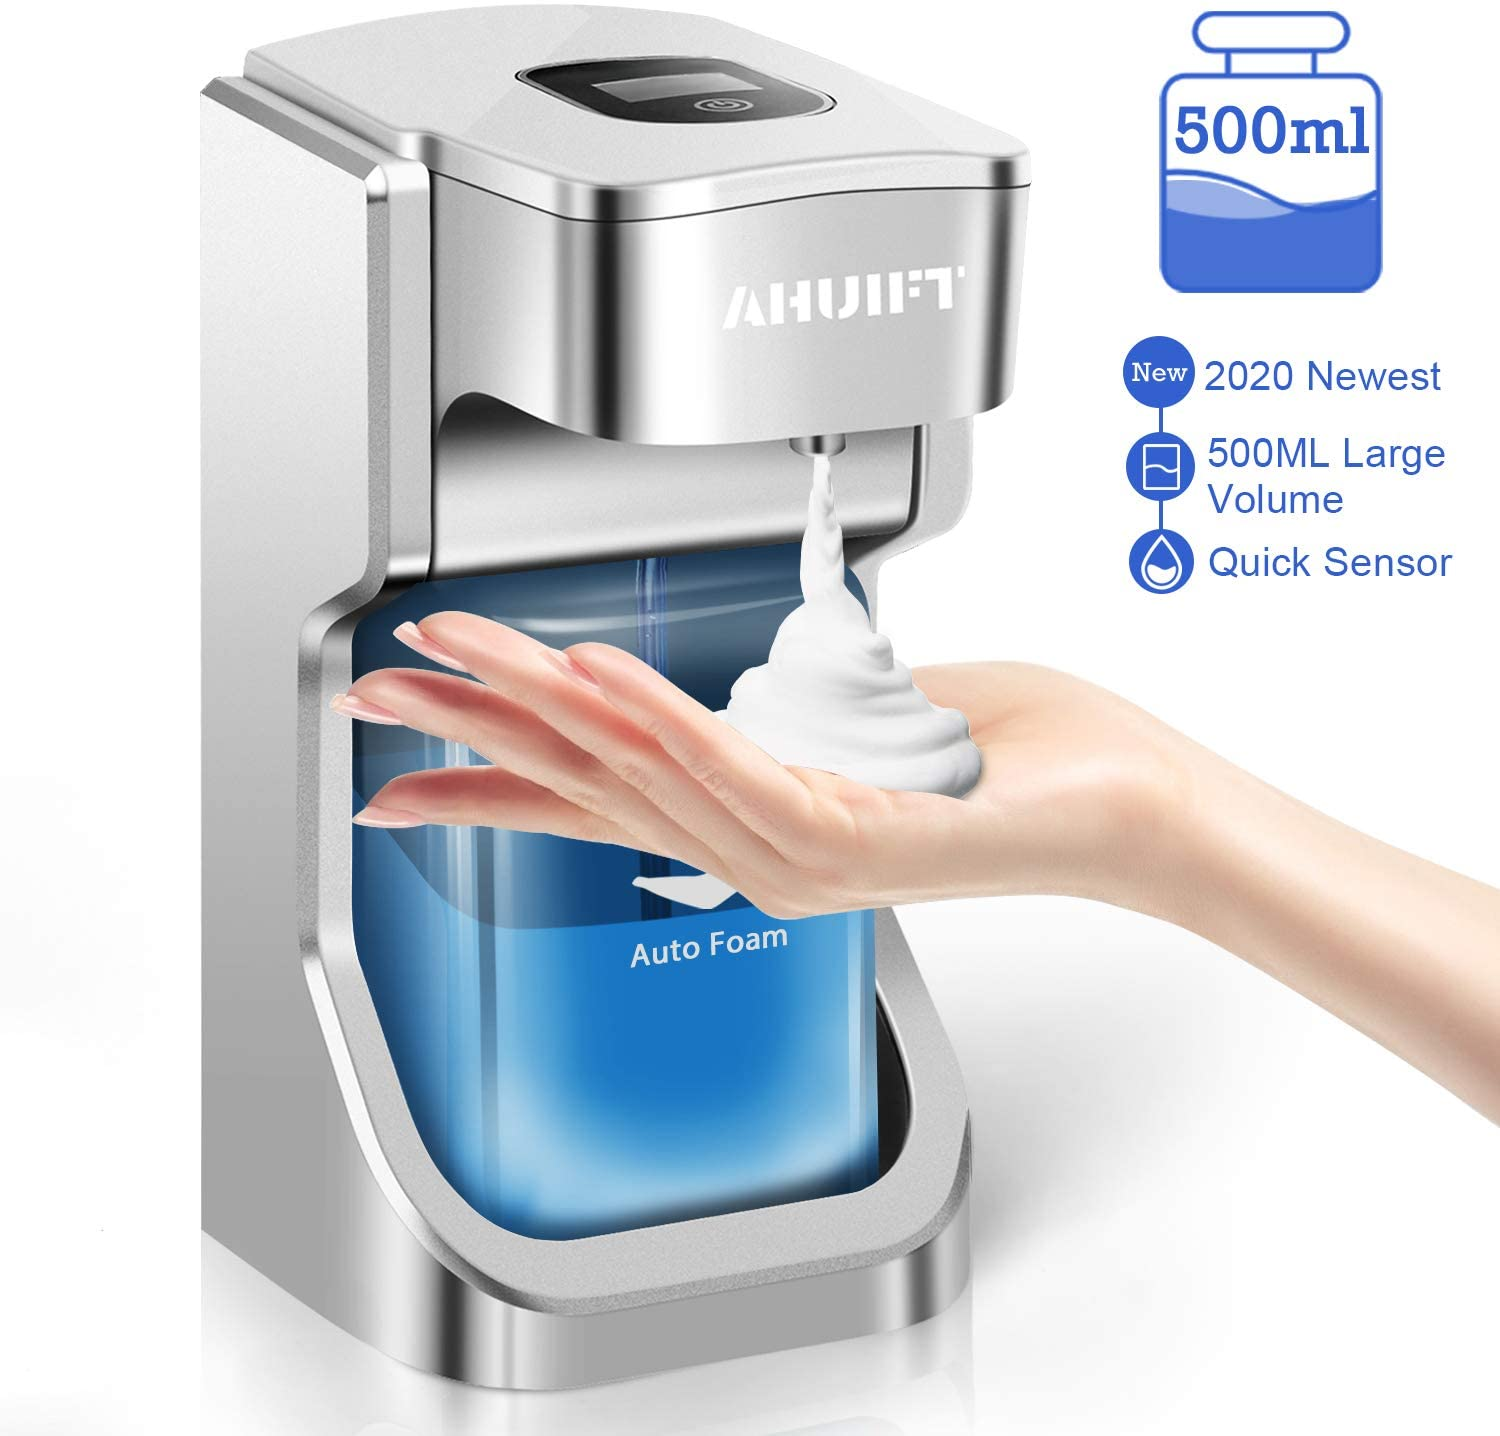 AHUIFT Automatic Soap Dispenser, 500ML Touchless Foaming Electric Soap dispensers, LCD Screen ABS Infrared Motion Sensor Dish Hand-Free Auto Wall Mounted Adjustable Switches for Kitchen Bathroom